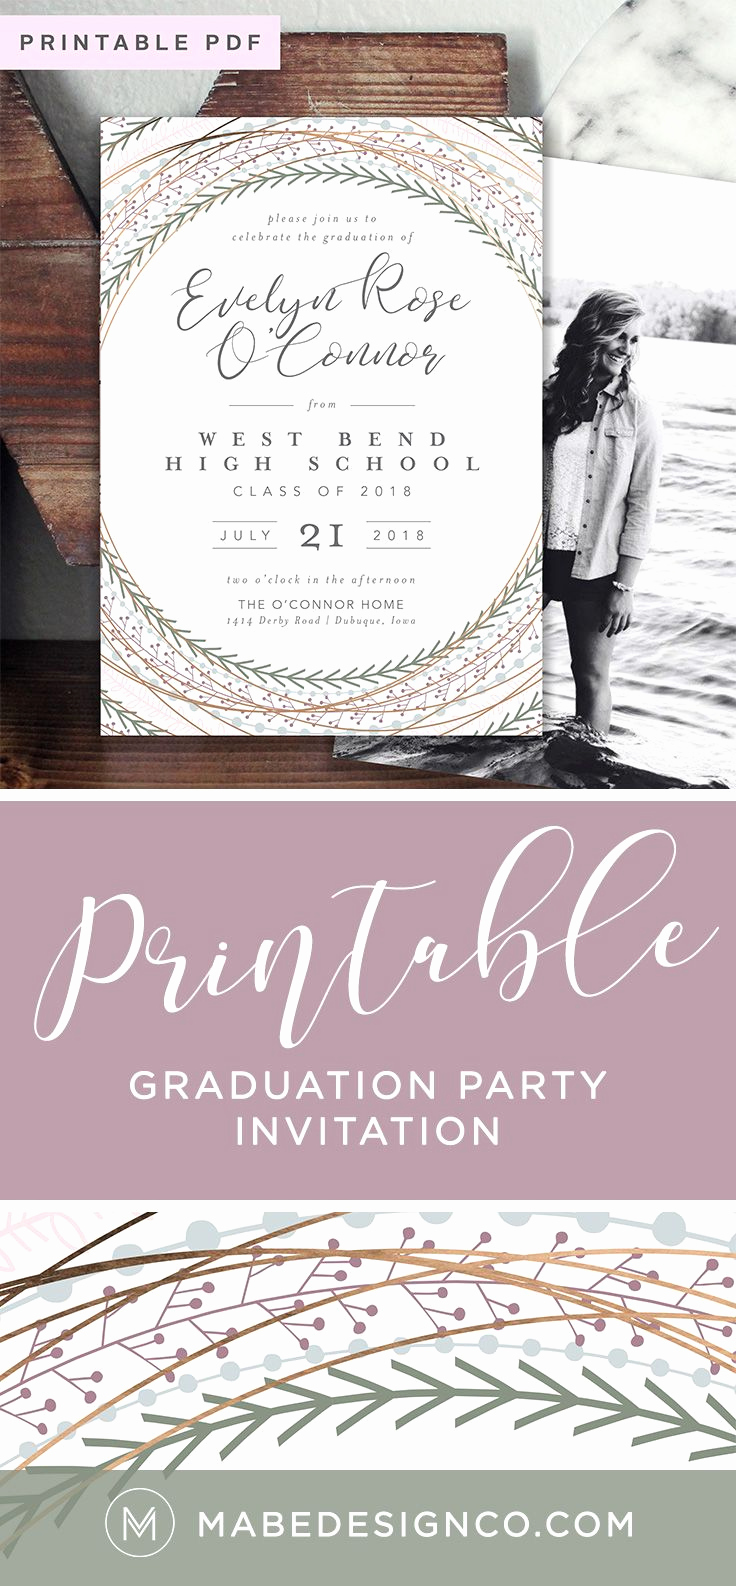 Graduation Party Invitation Sayings Awesome Best 25 Graduation Invitation Wording Ideas On Pinterest